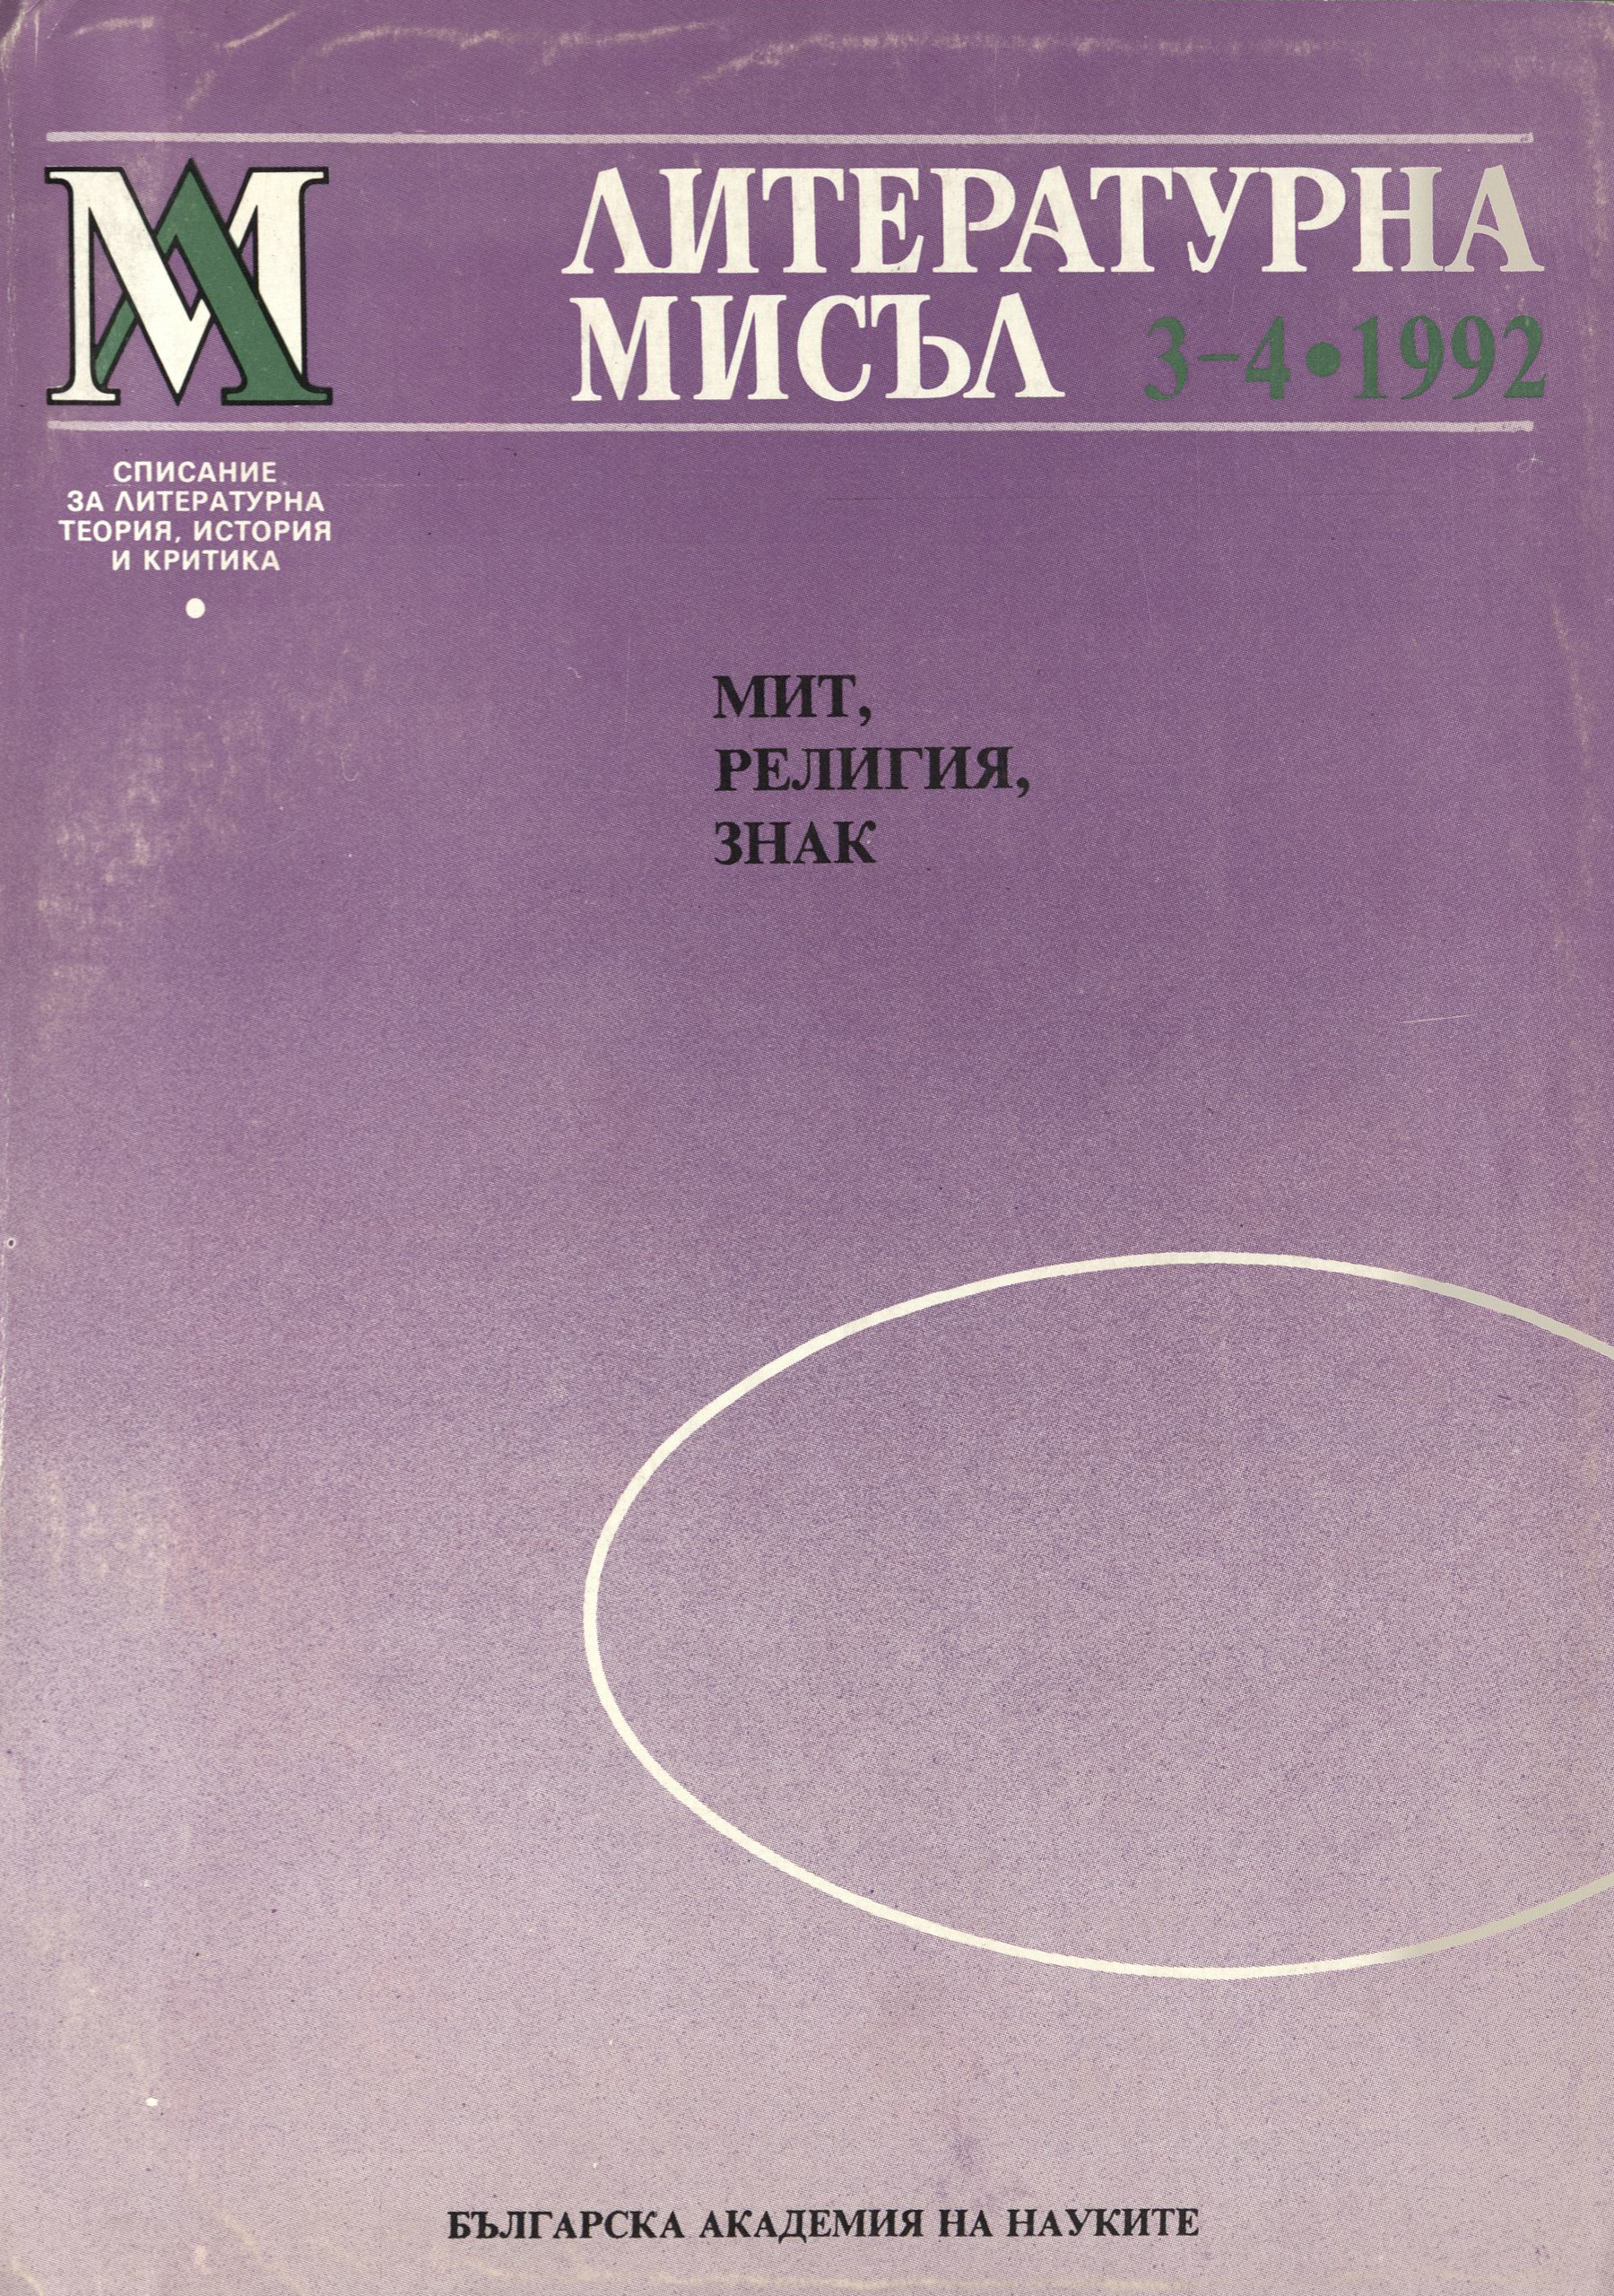 Issue 3-4, 1992